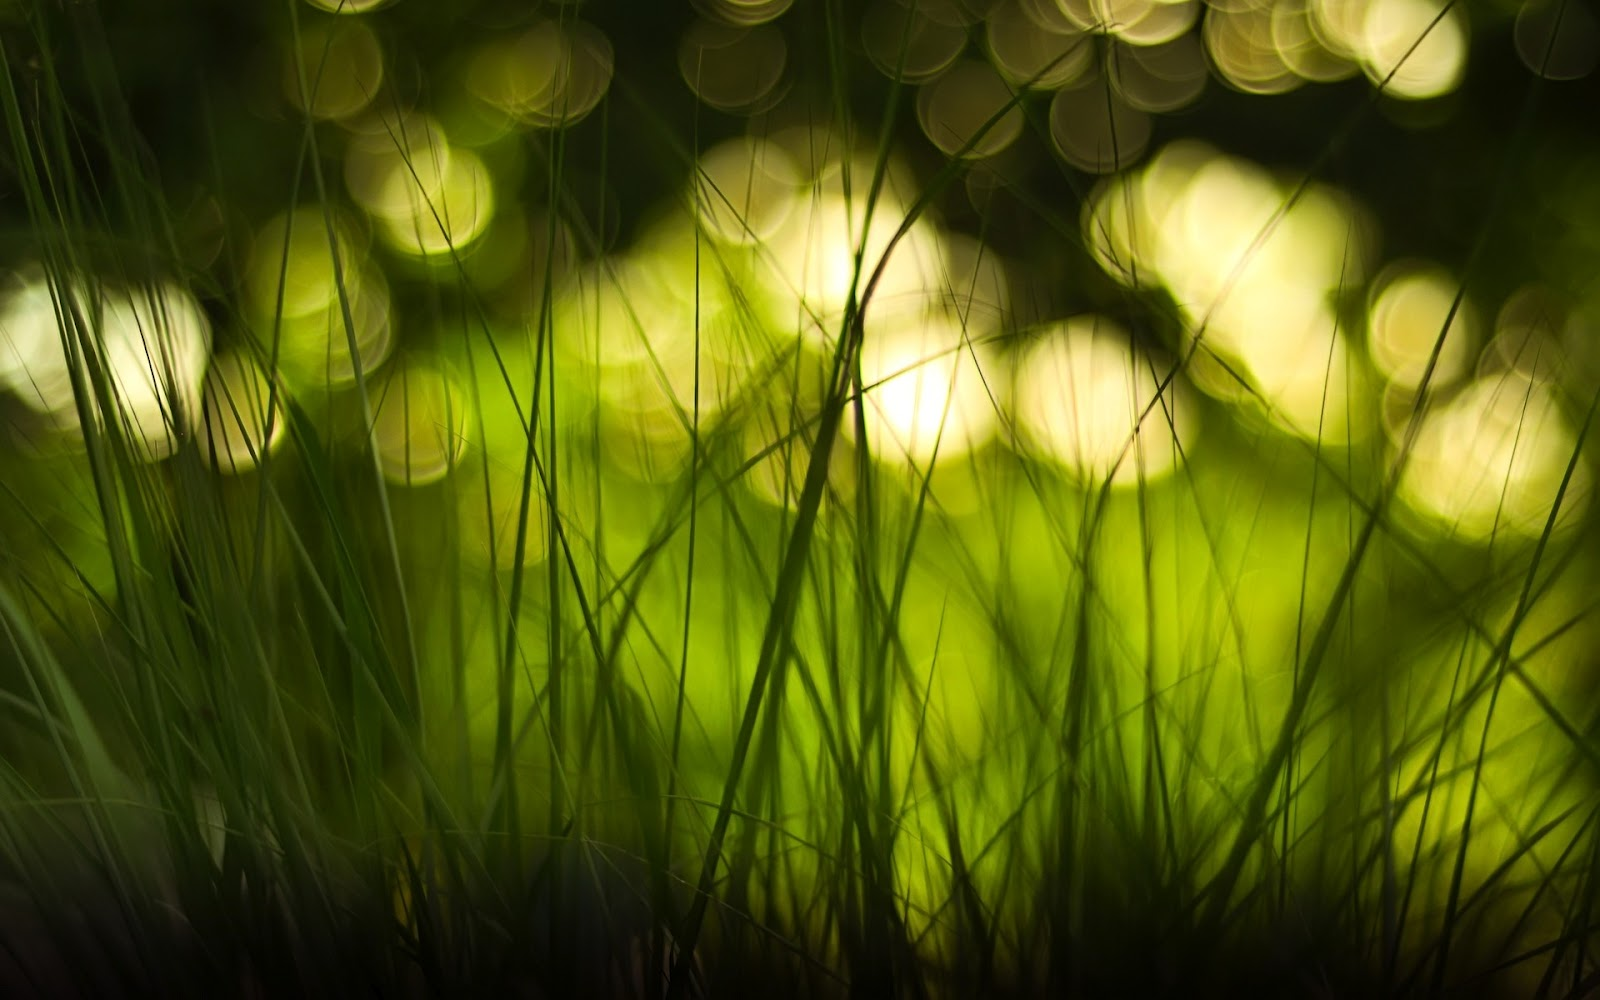 http://1.bp.blogspot.com/-gsYQQFPG-Jg/T2iJKuncYxI/AAAAAAAAA5w/D91ZfG4wBAM/s1600/Grass_and_Blurred_Bokeh_Lights_HD_Nature_Wallpaper.jpg